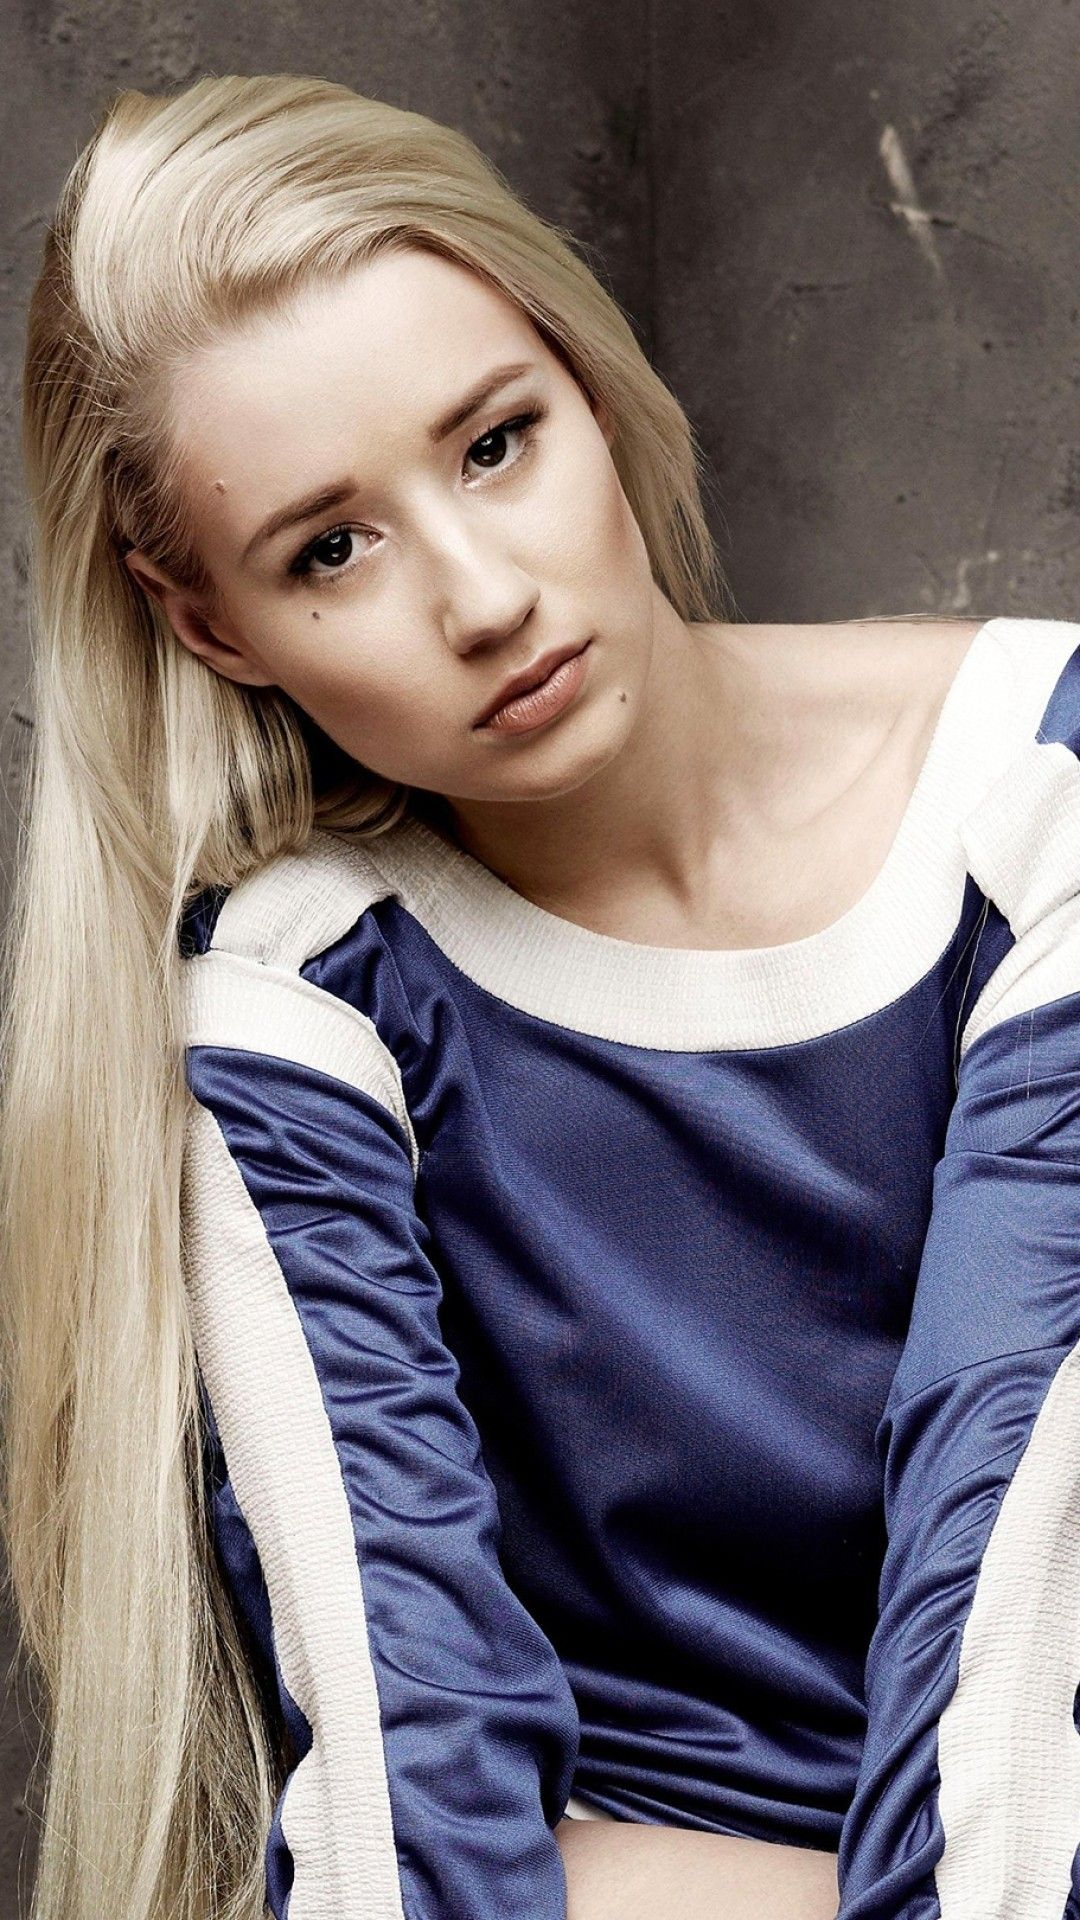 Wallpaper Phone Iggy Azalea Full Hd Iggy Azalea Iggy Gal Gadot